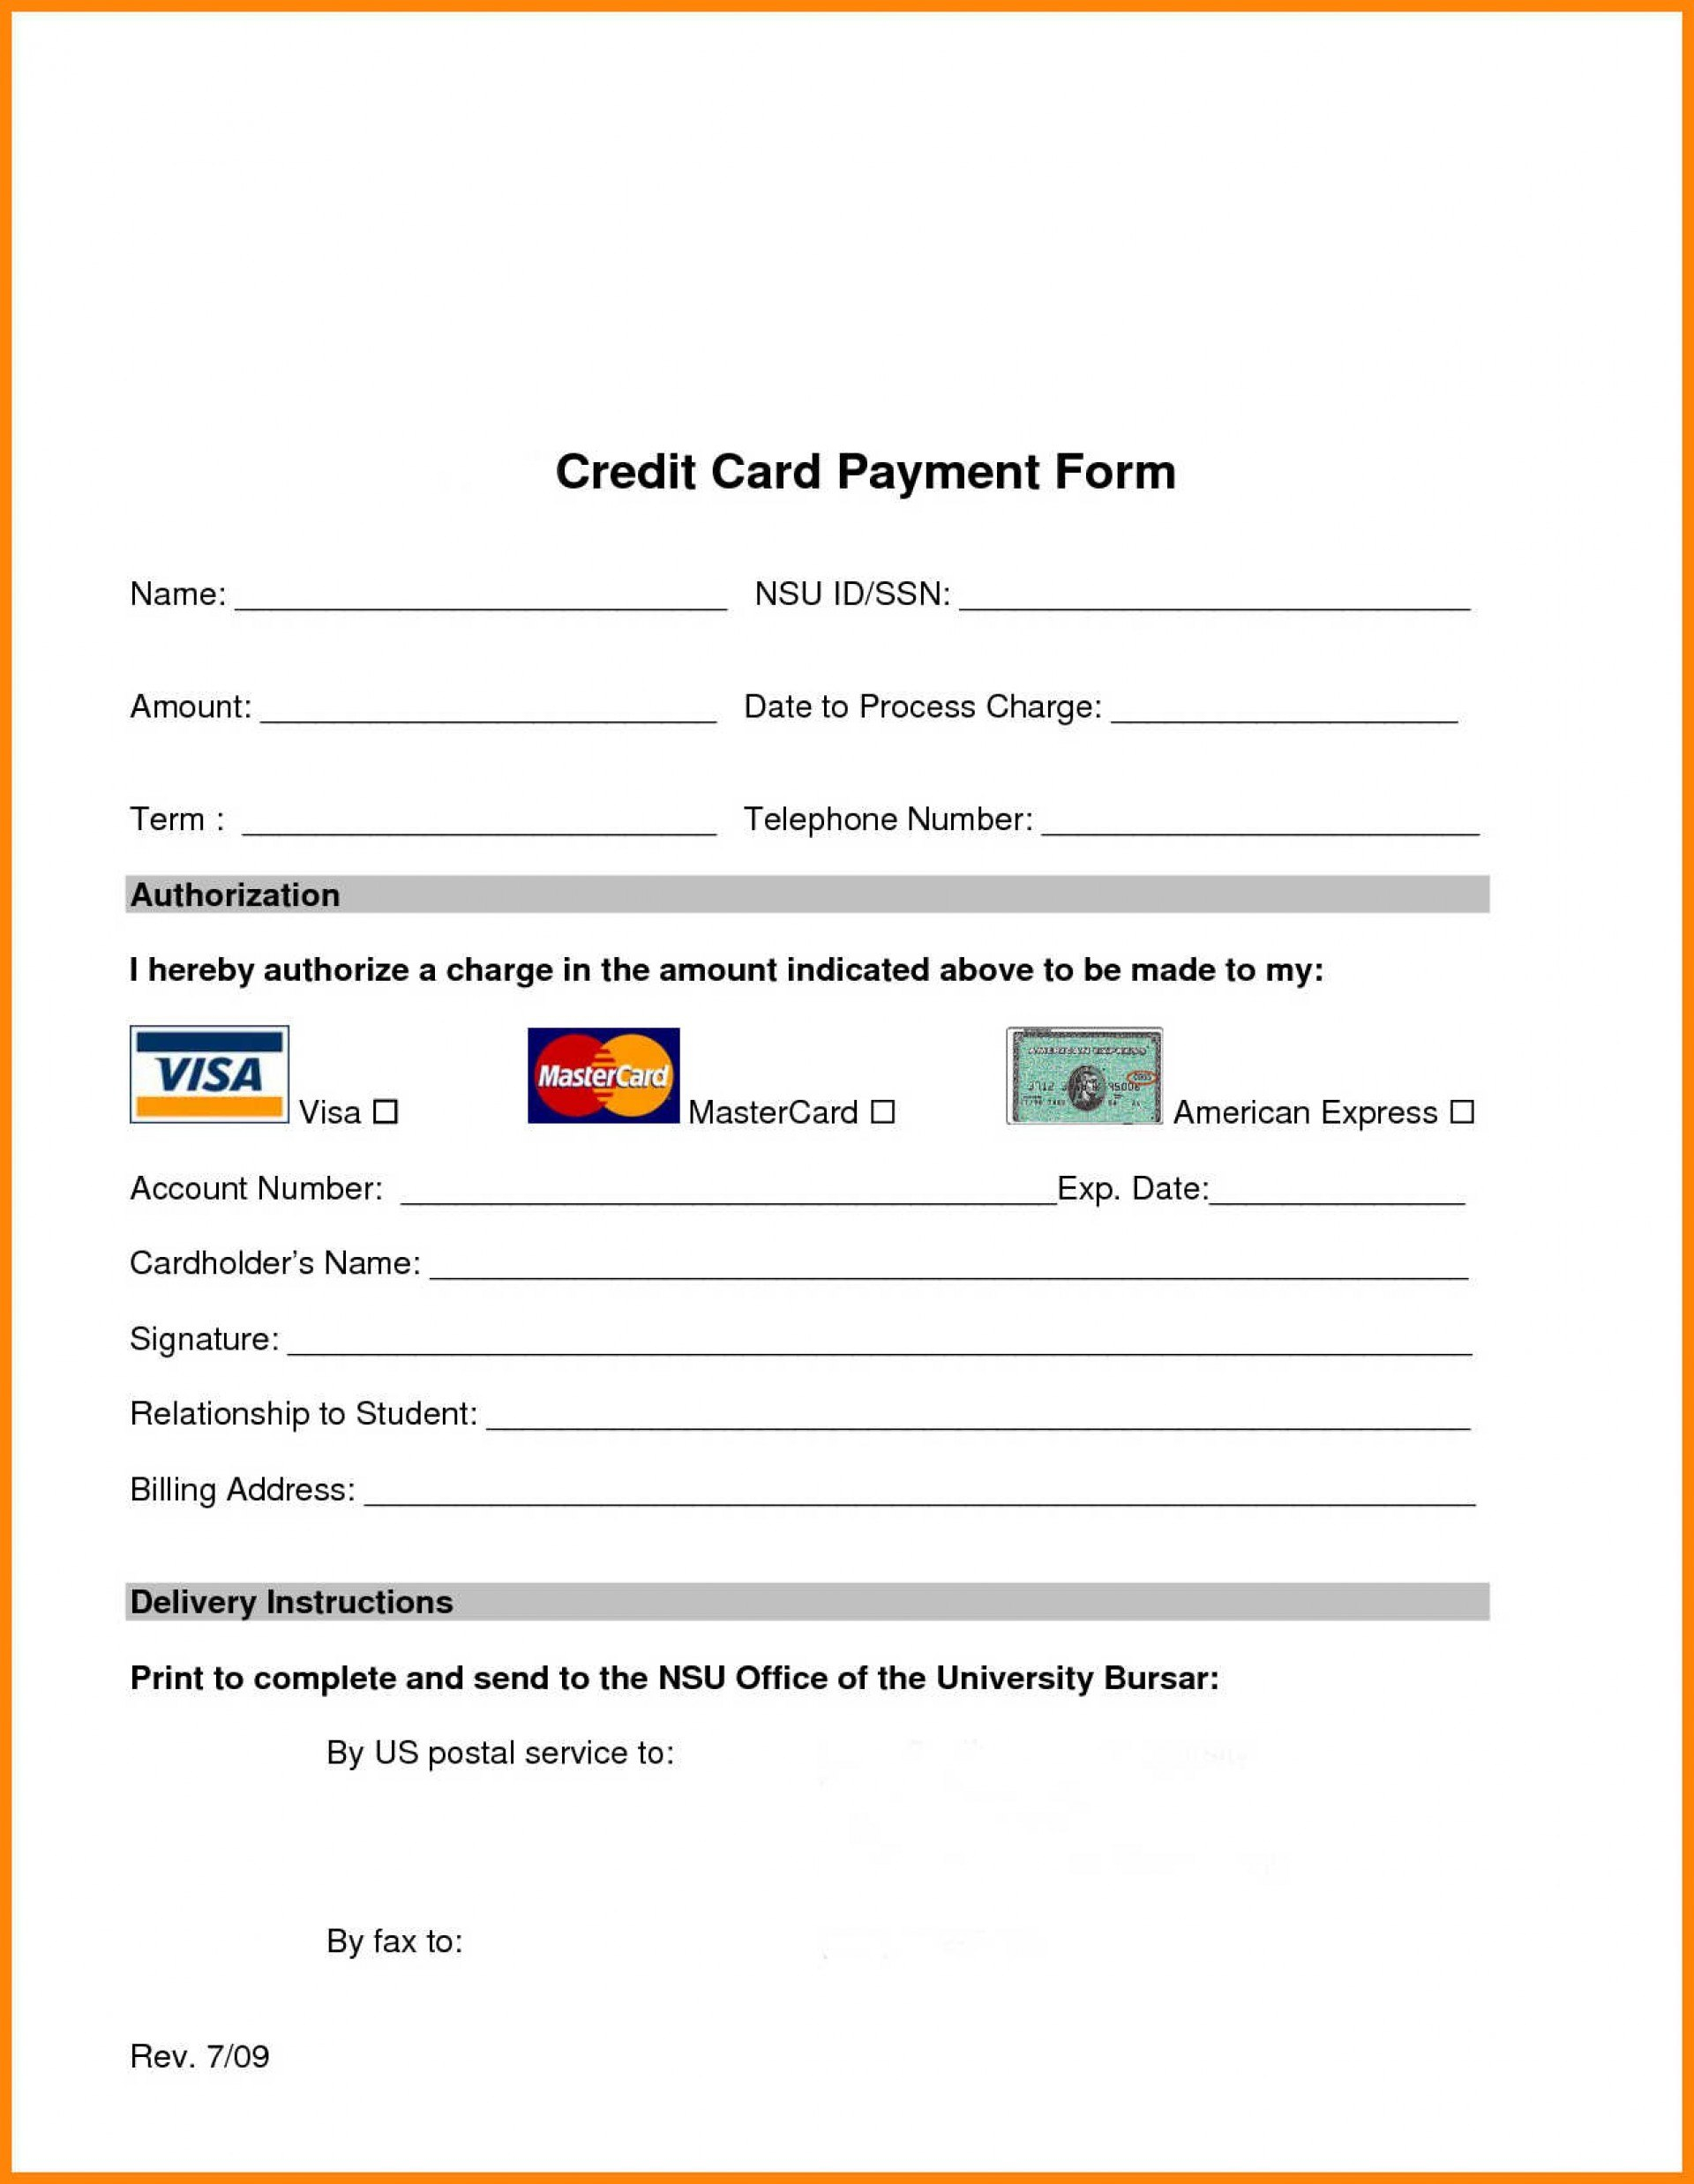 Hilton Credit Card Authorization Form Template Pdf Unbelievable With Order Form With Credit Card Template